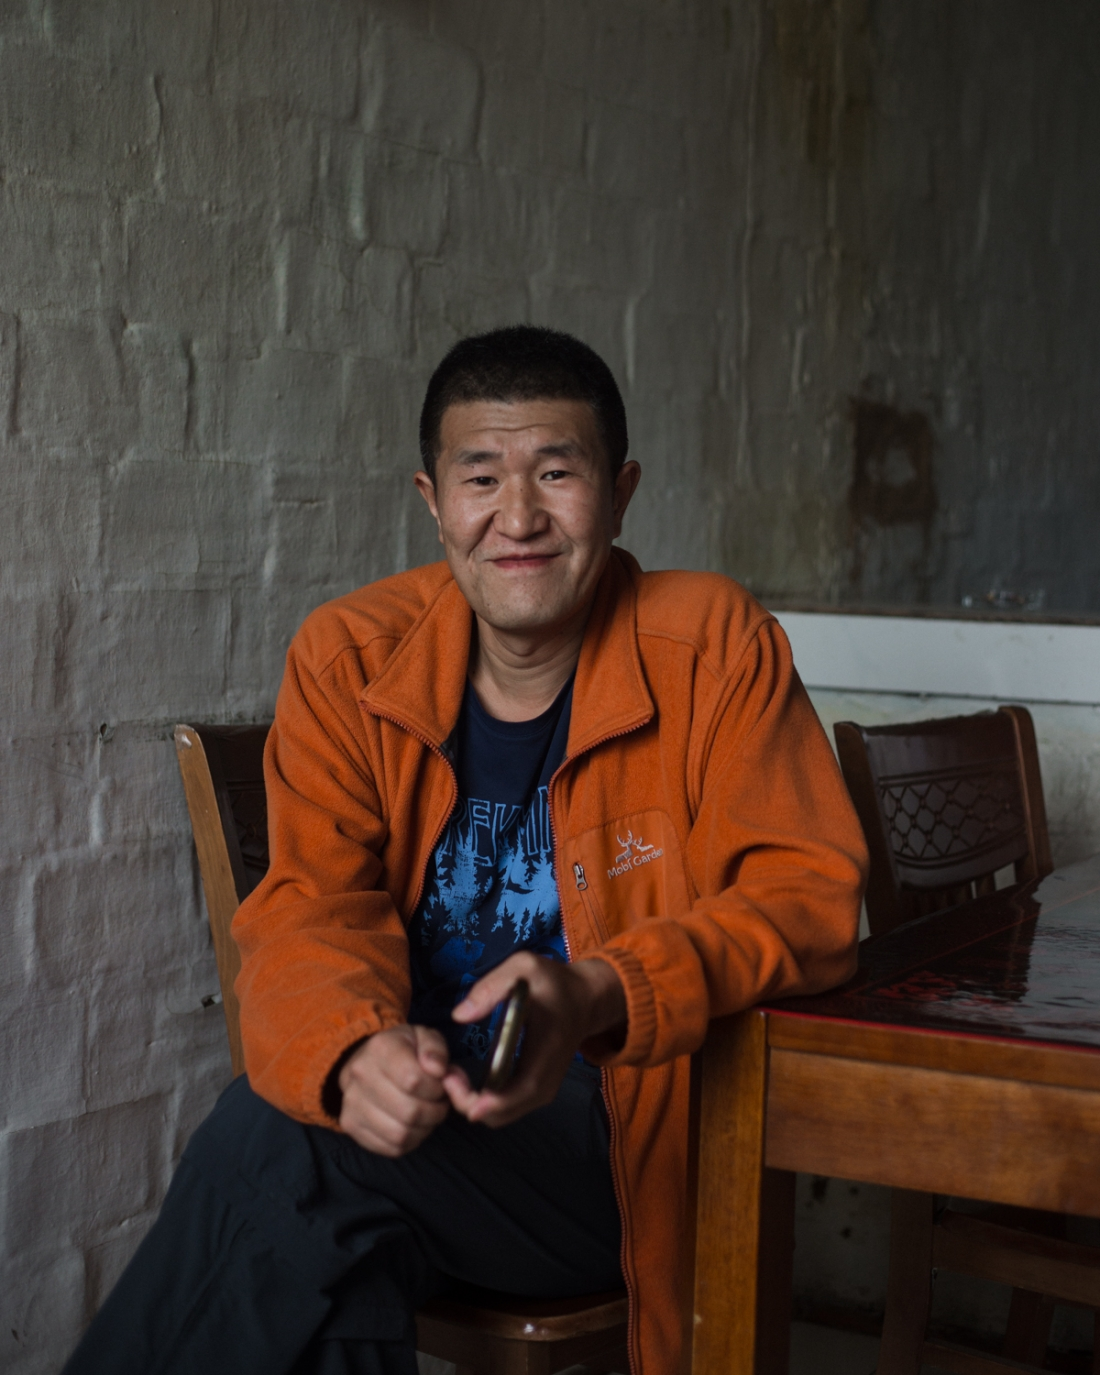 Guang Peng, Baiyinnar, July 2017 The Oroqen are one of oldest ethnic minorities in Northeast China and have cultural and linguistic links to numerous ethnic minority groups spread across Heilongjiang, Inner Mongolia and out to Siberia across the Russian border. As an anthropologist Guang Peng works to document the language and culture of his community in a rapidly changing world.